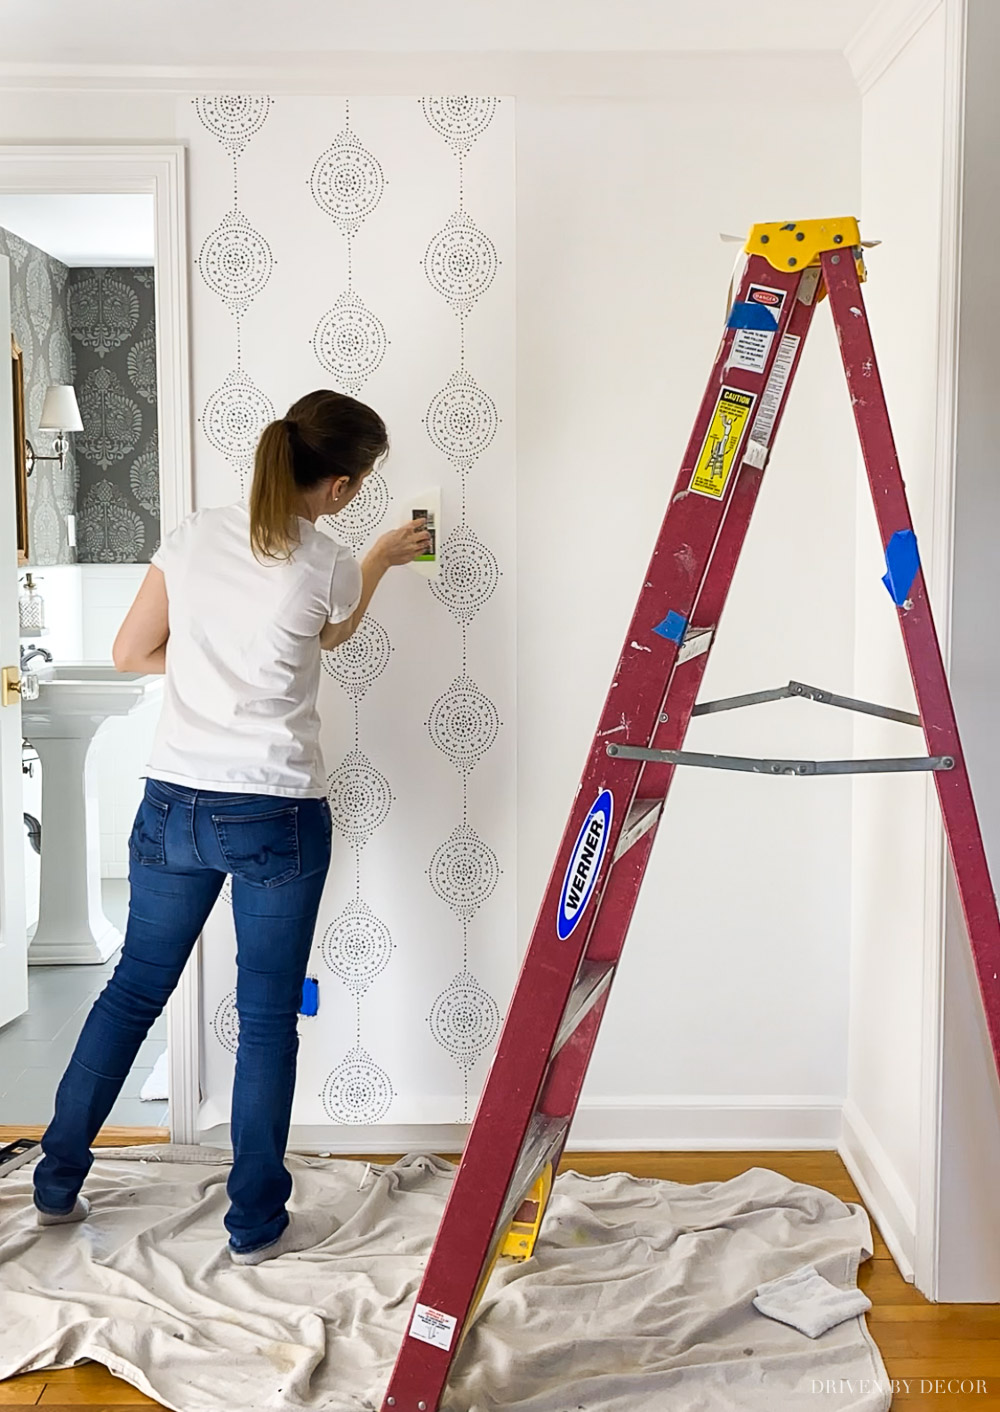 Entryway makeover starting with hanging new wallpaper!